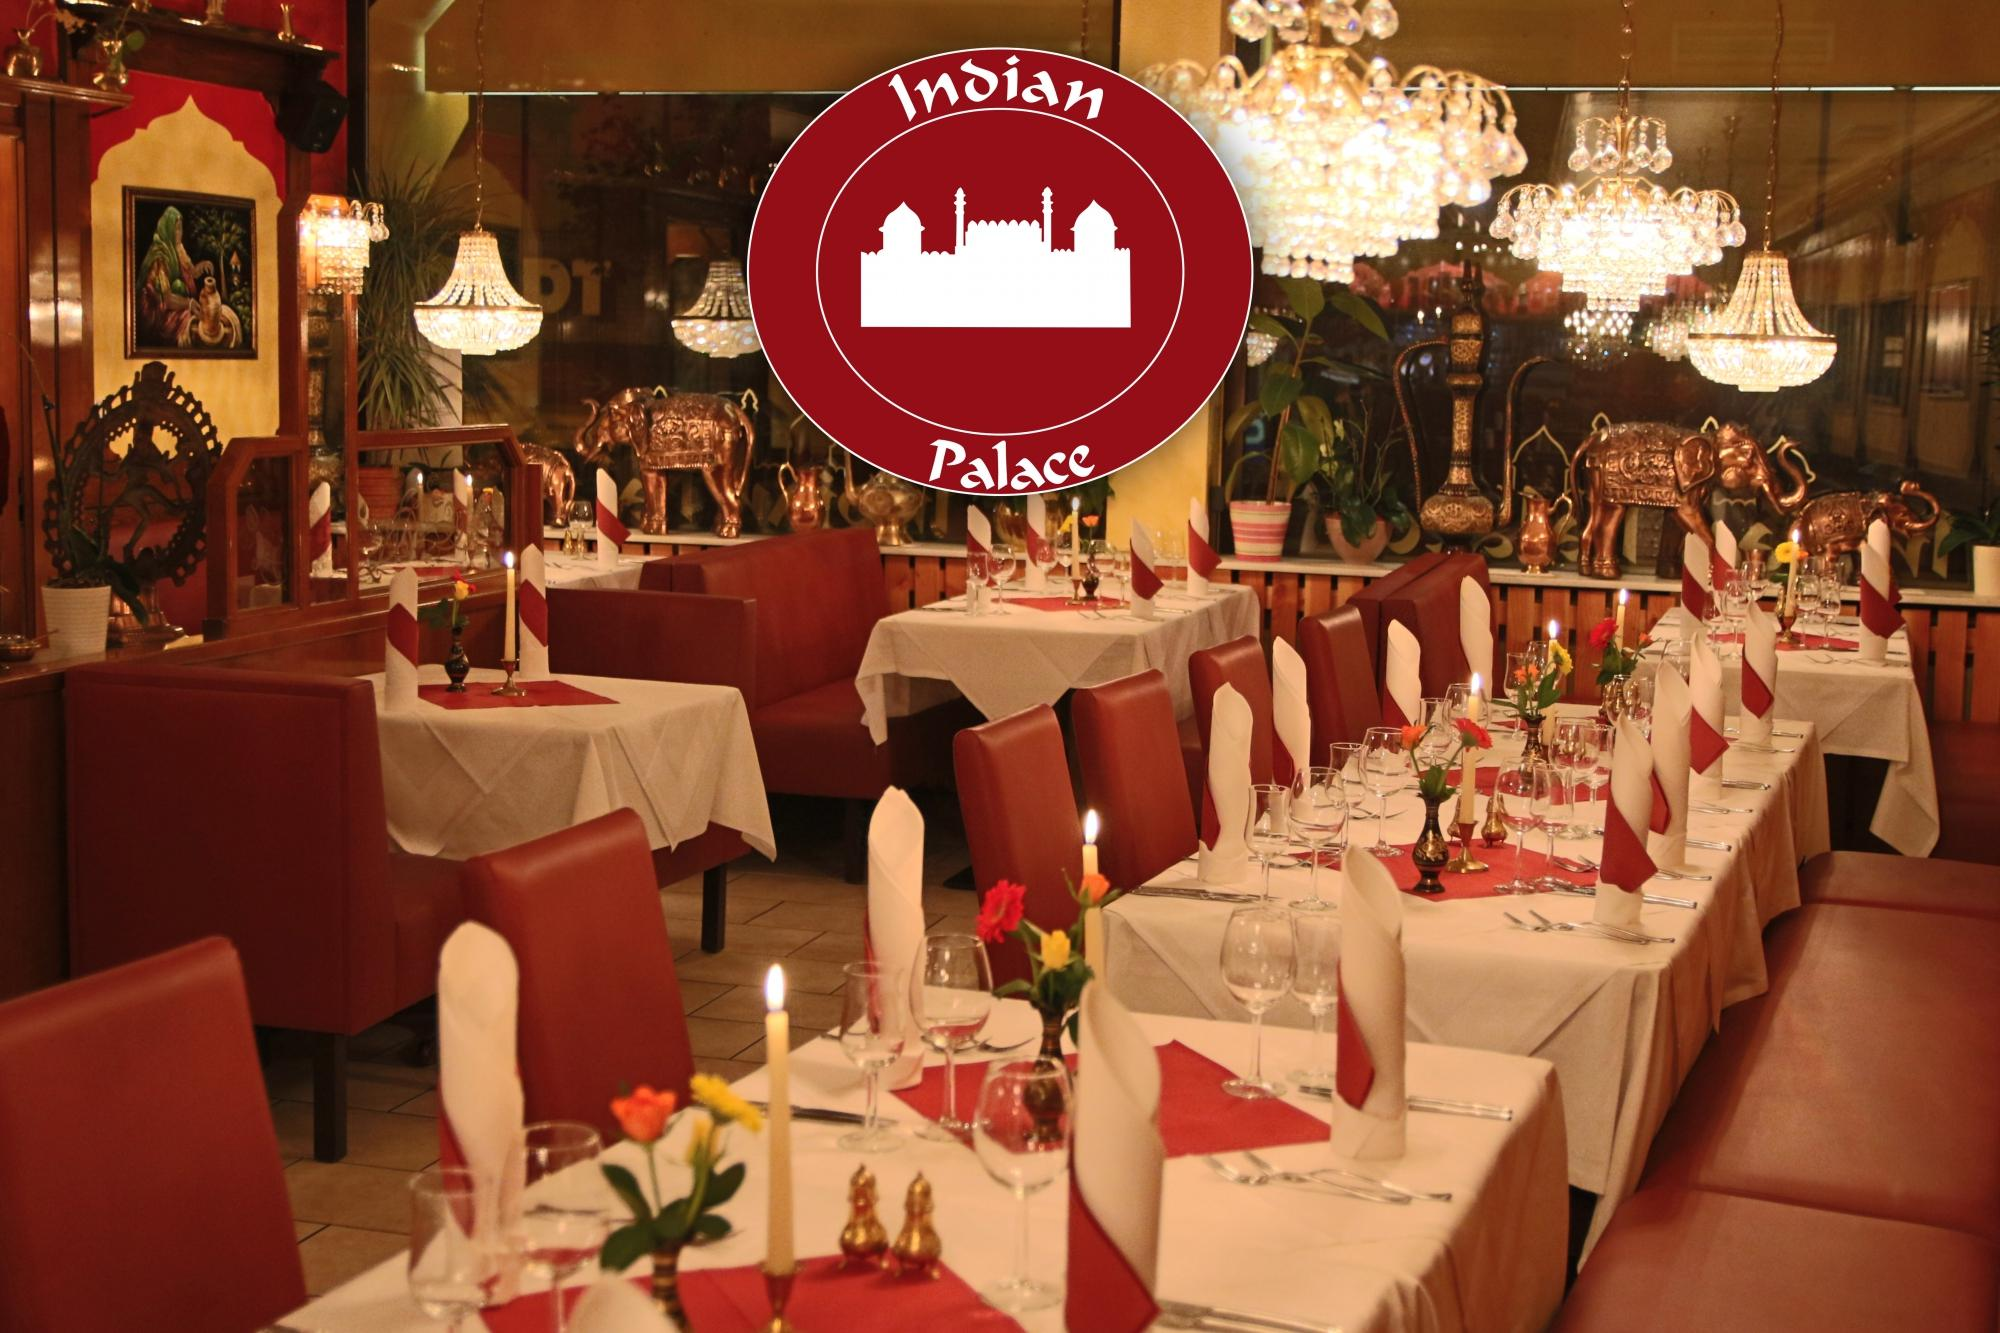 Things To Do in Indian, Restaurants in Indian